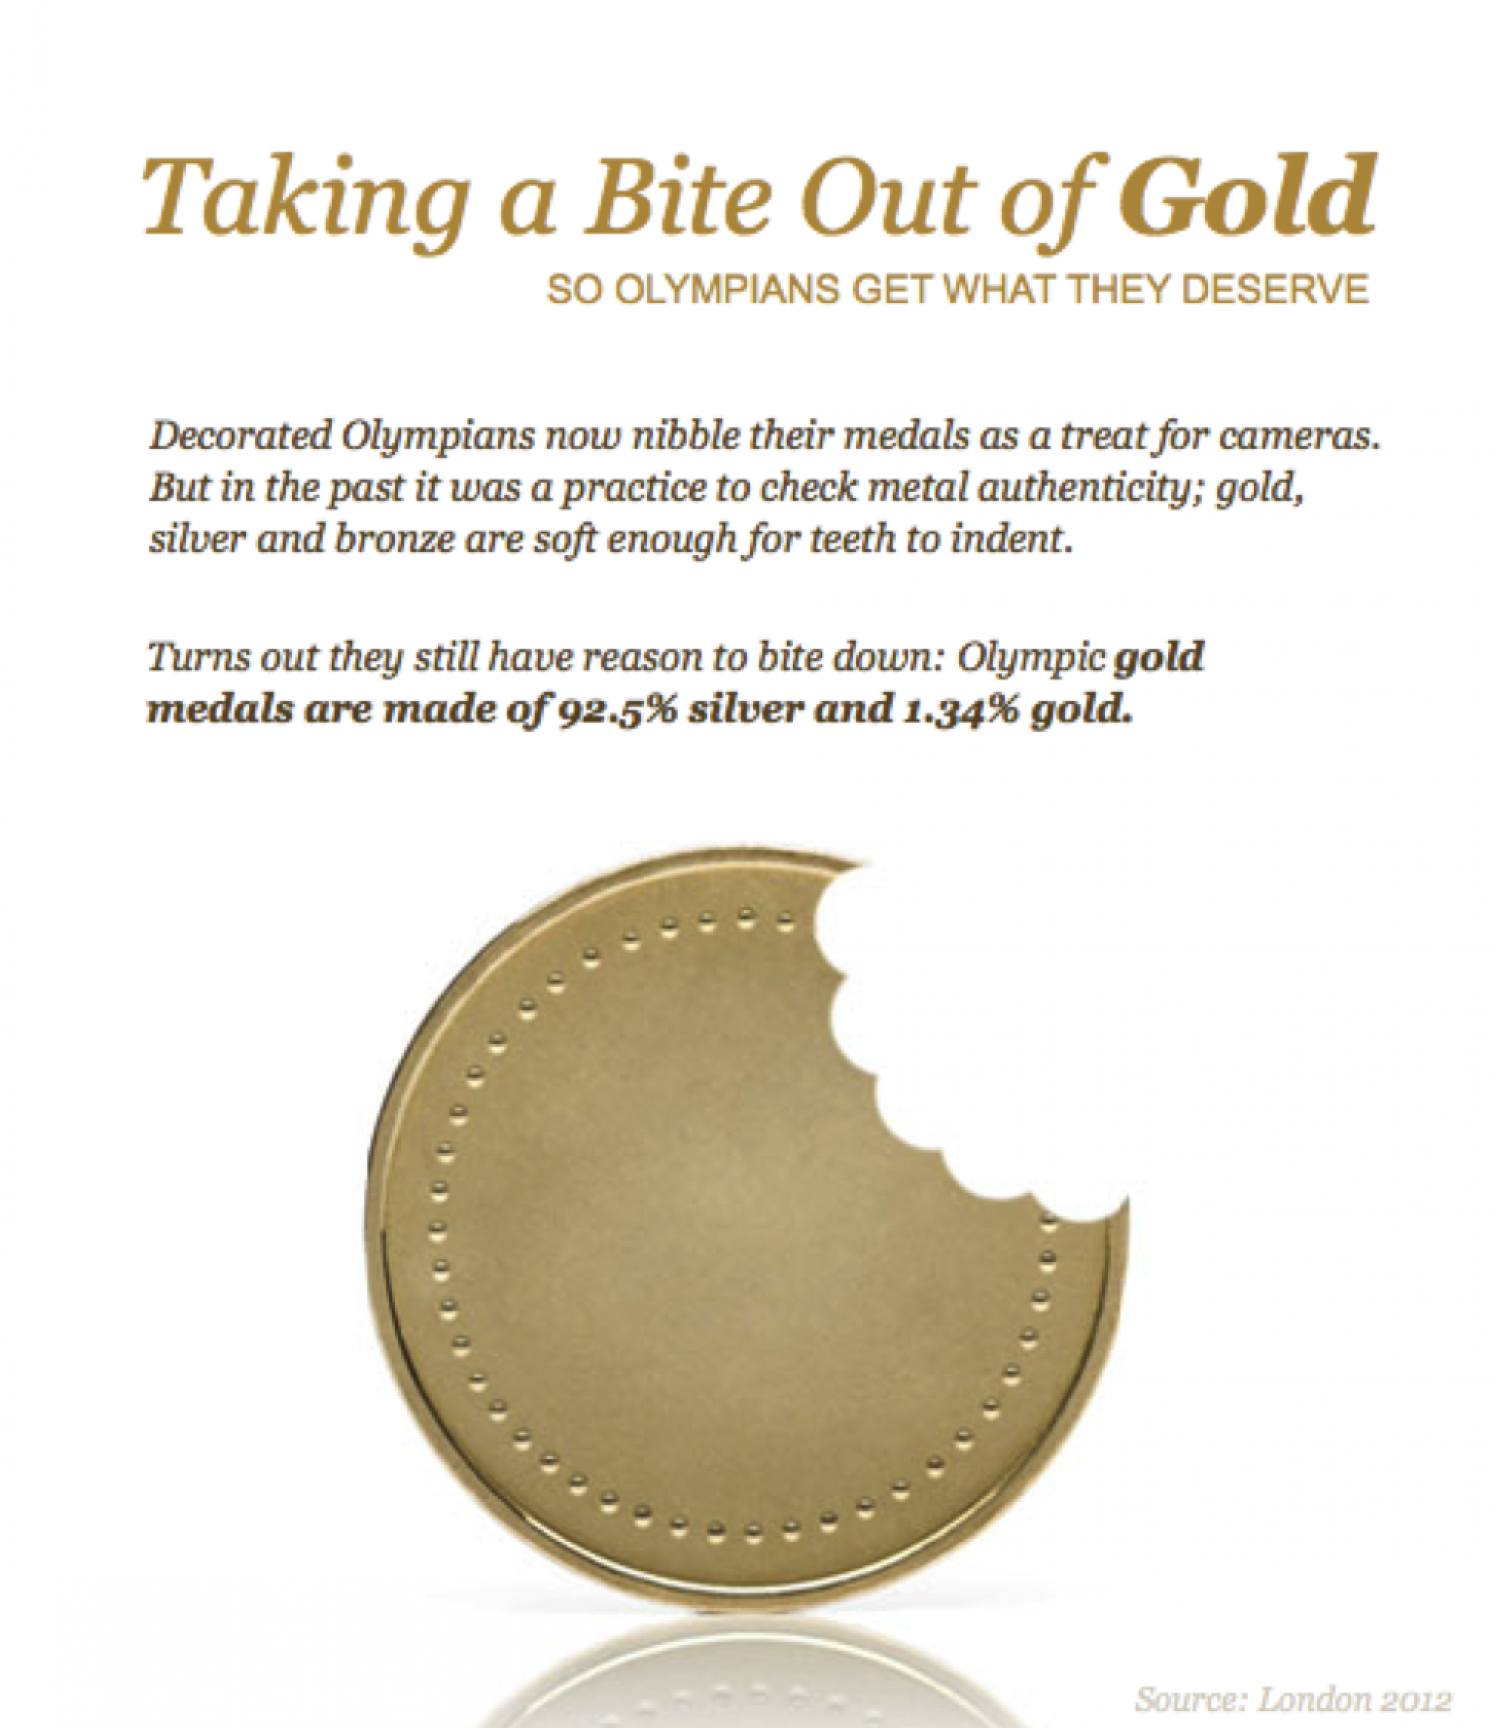 Biting Gold Infographic